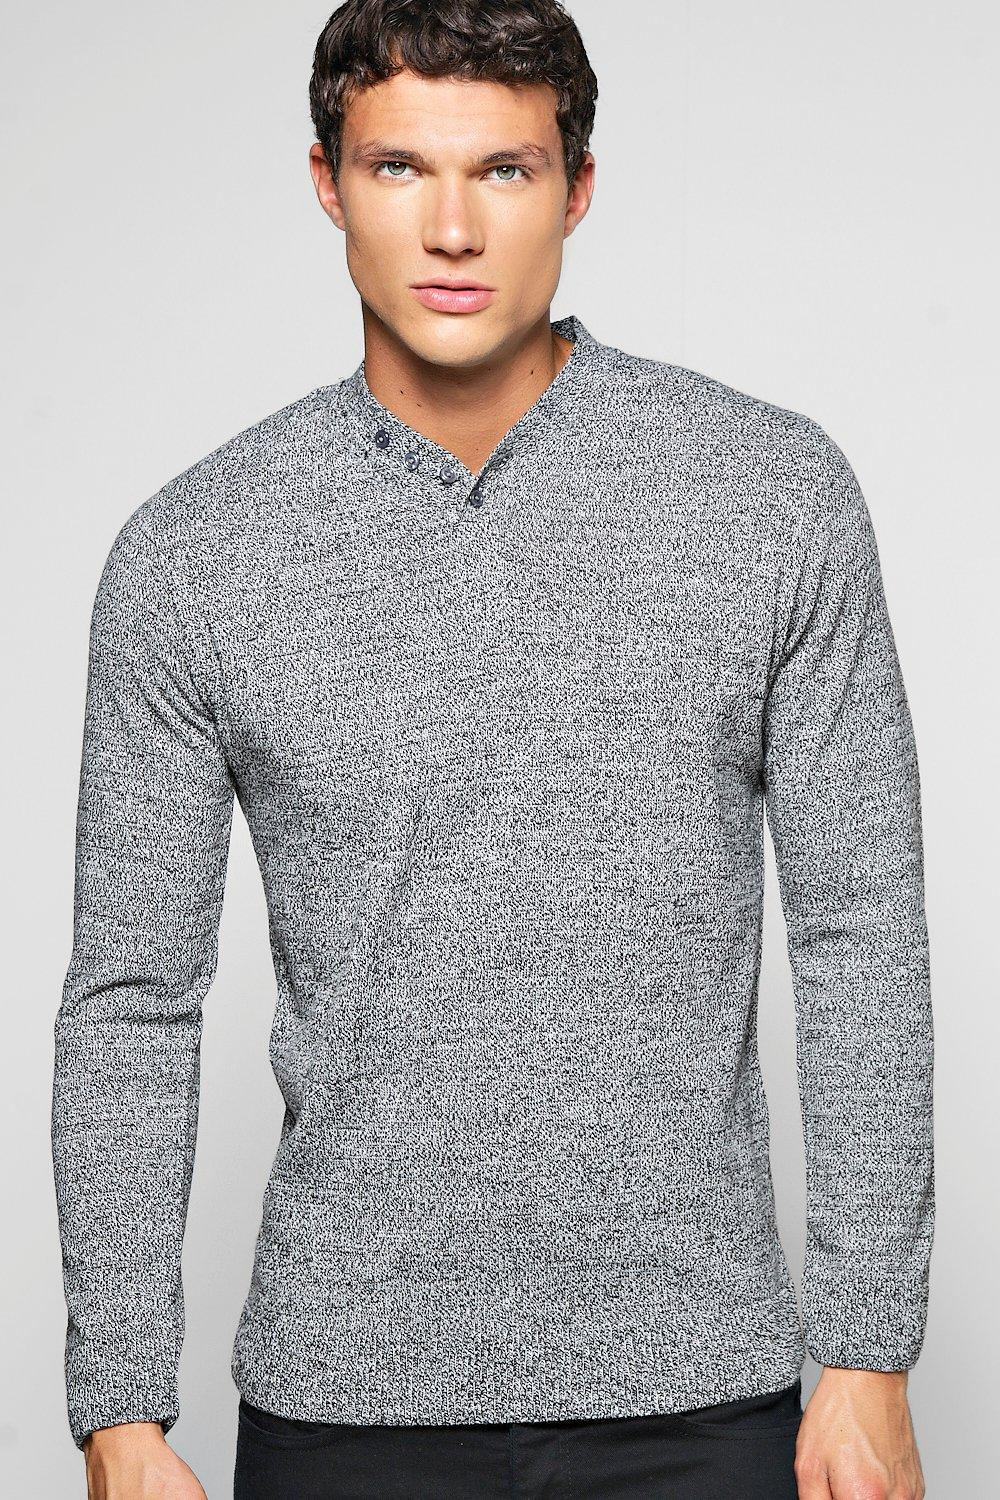 Y Neck Placket Sweater in Mixed Yarn